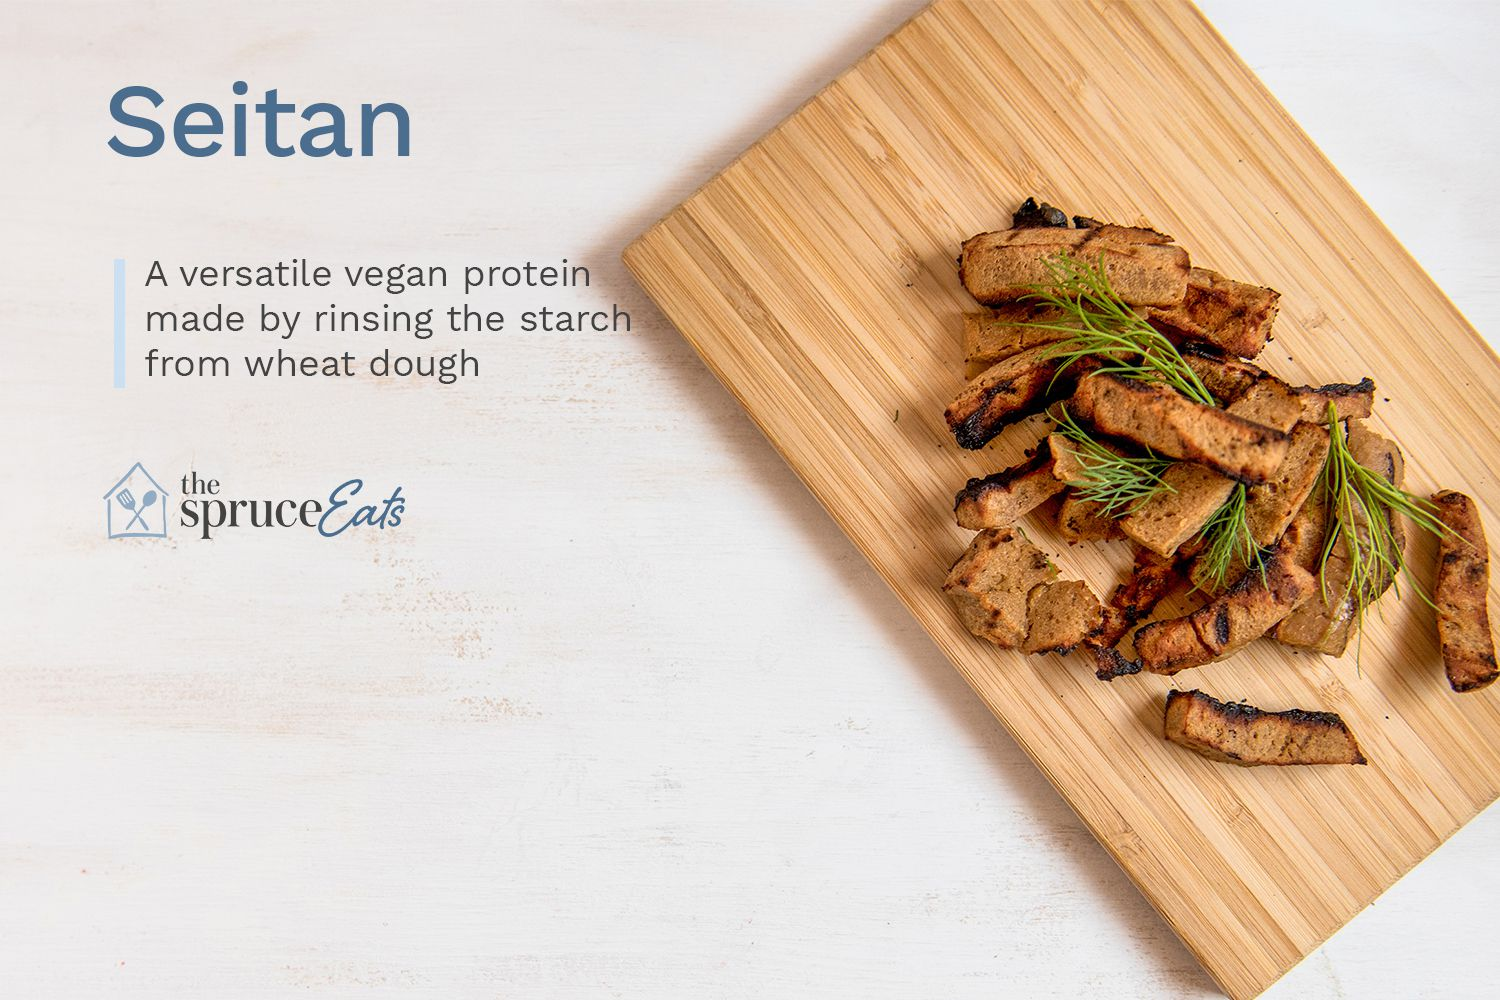 What Is Seitan and How Is It Used?